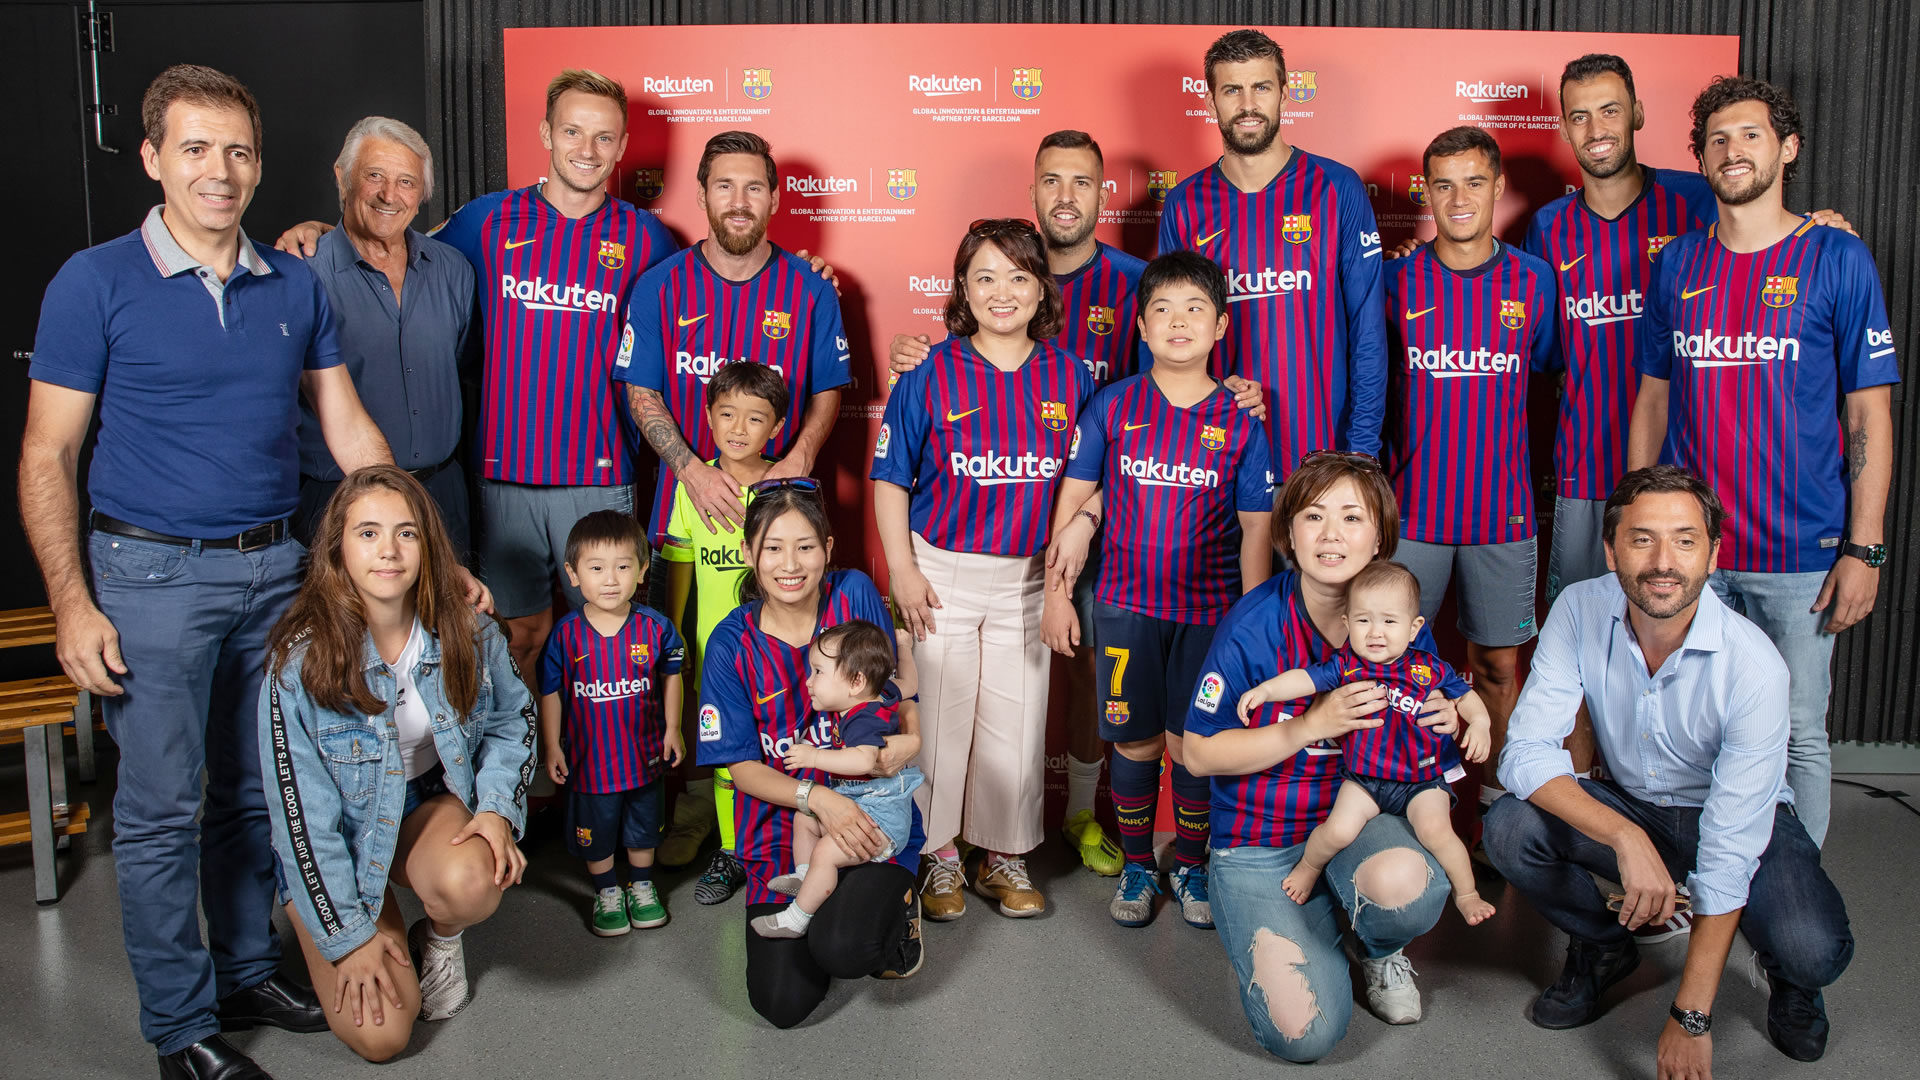 Rakuten Mamawari & FC Barcelona Make Dreams Come True